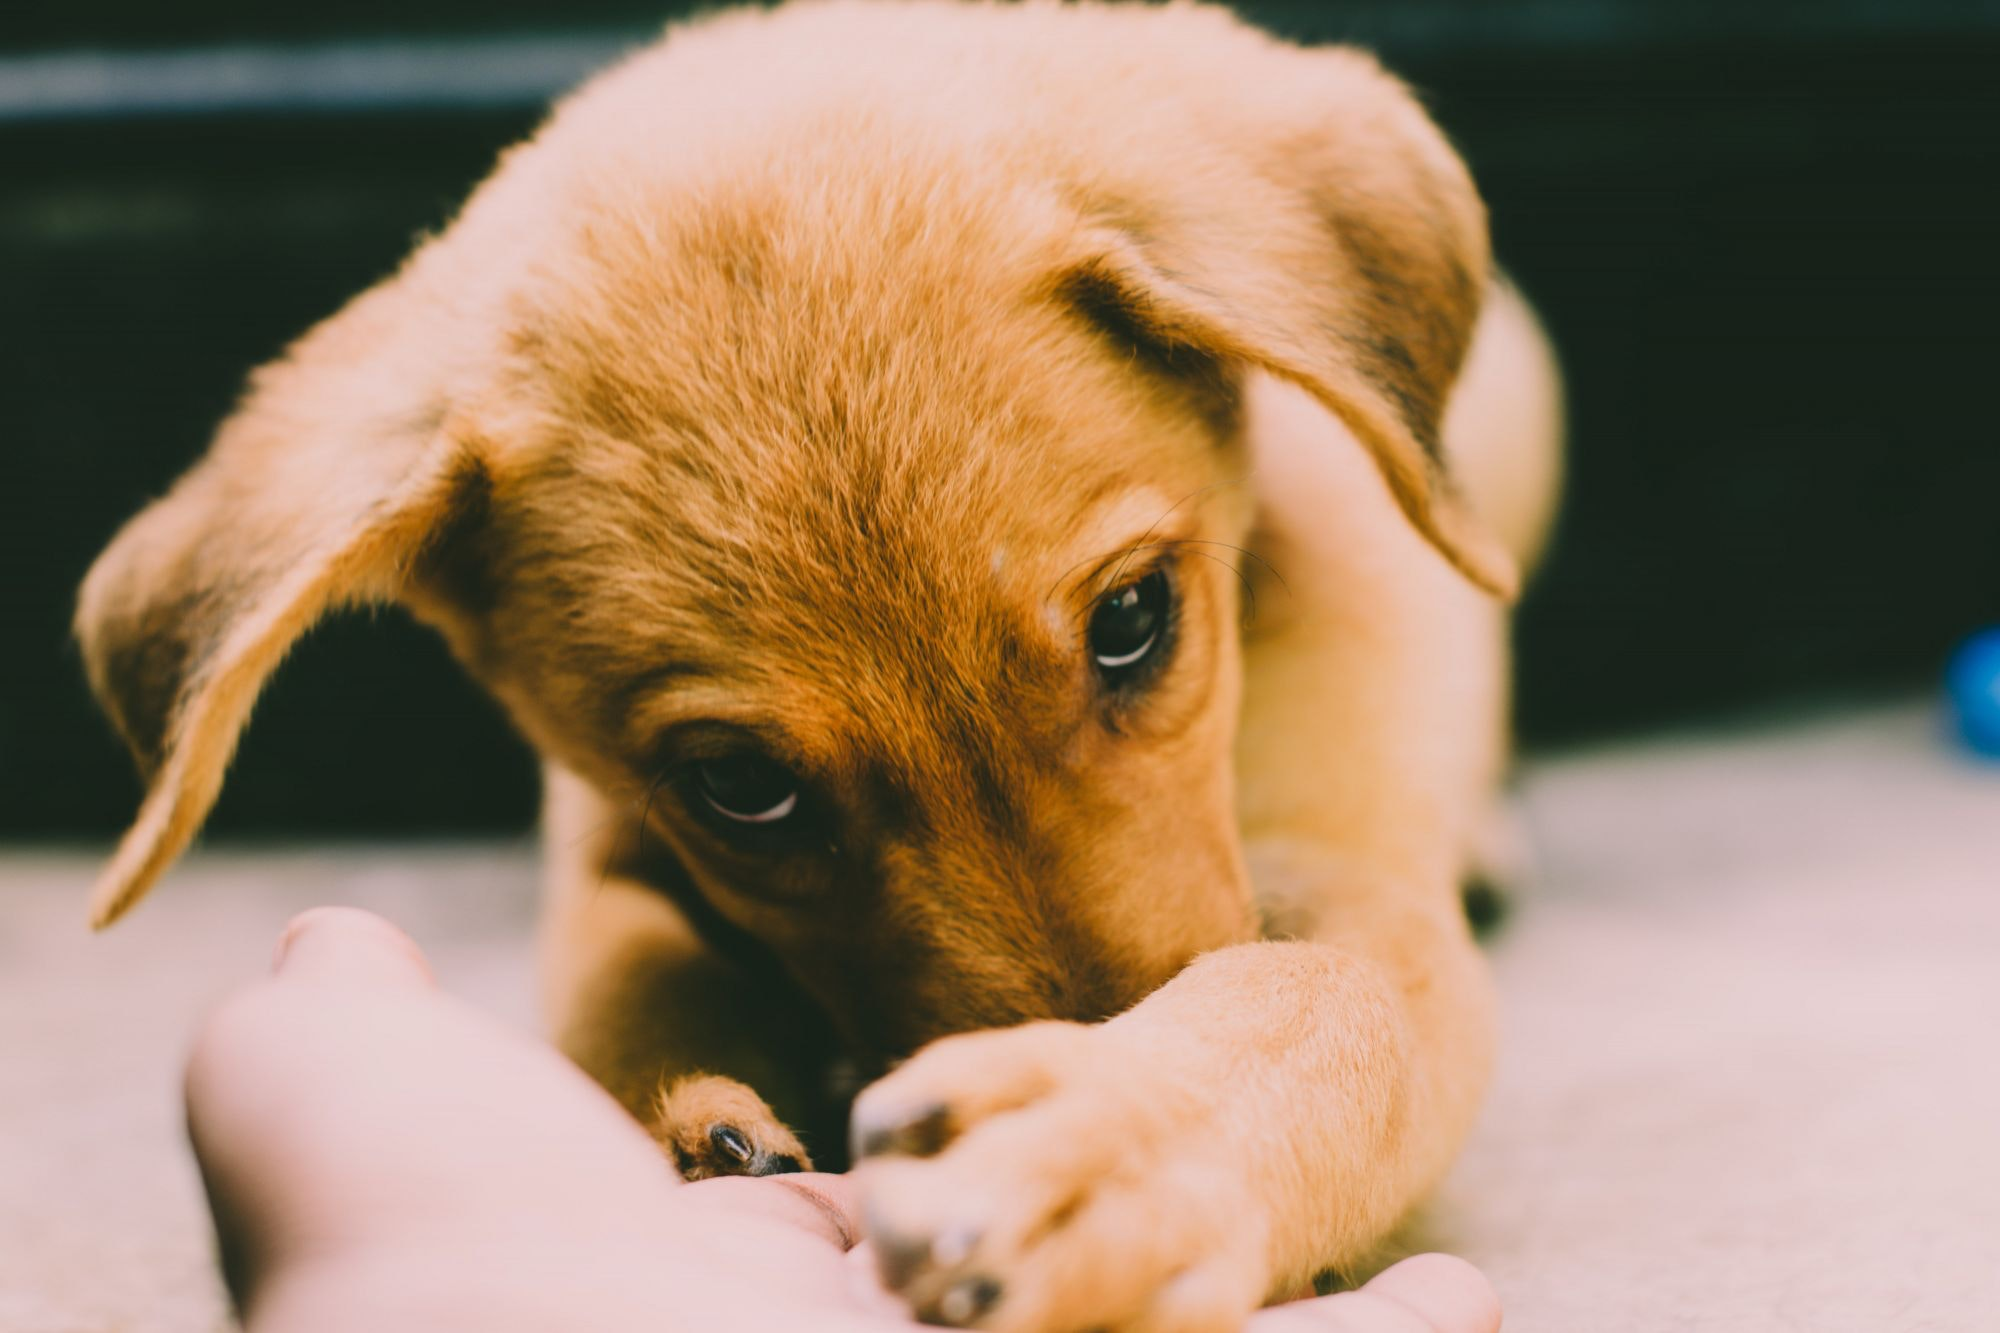 Golden Retriever Puppy, Animal, Looking, Small, Puppy, HQ Photo